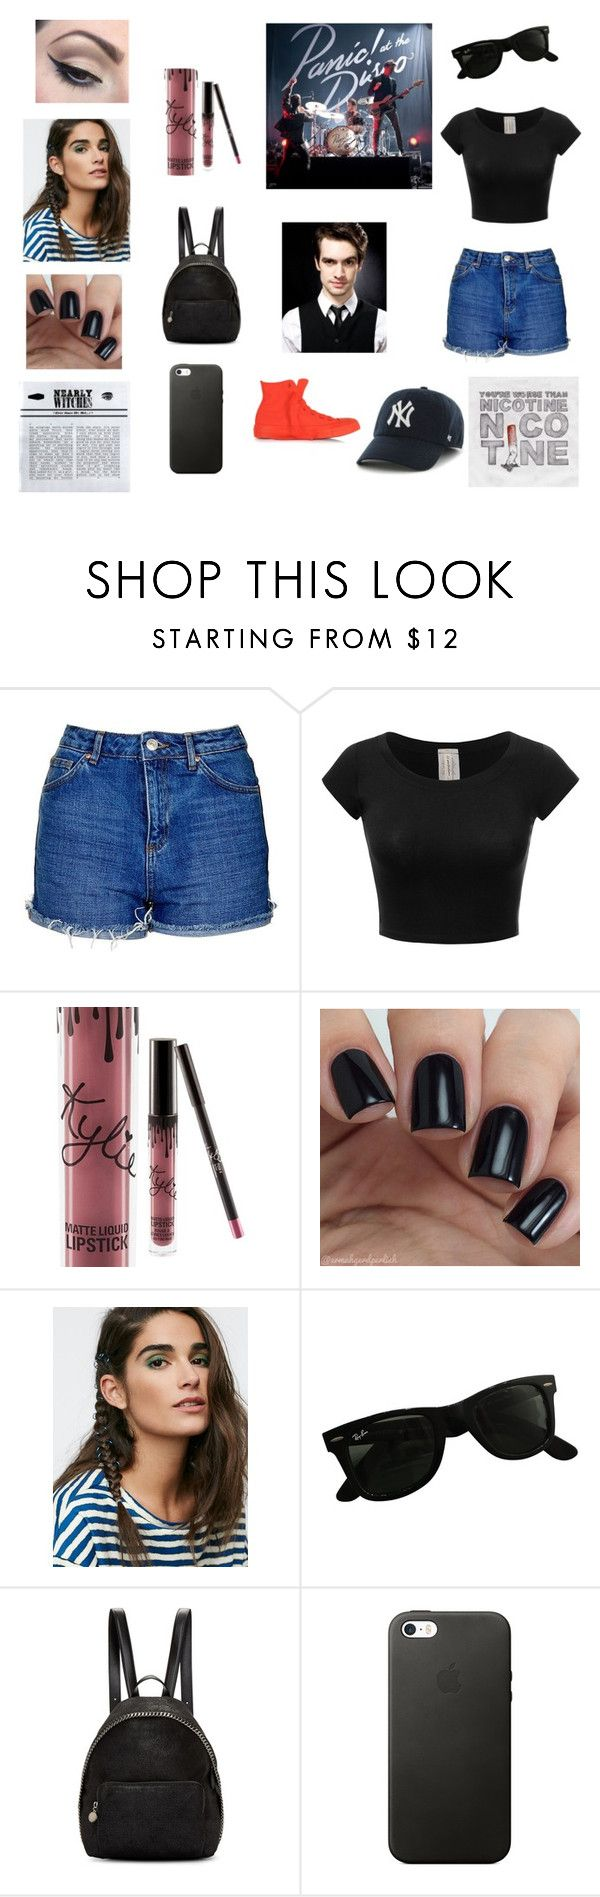 """""""Panic! At The Disco concert"""" by sarahbear231 on Polyvore featuring Topshop, Mehron, Aeon, Ray-Ban, STELLA McCARTNEY and Converse"""